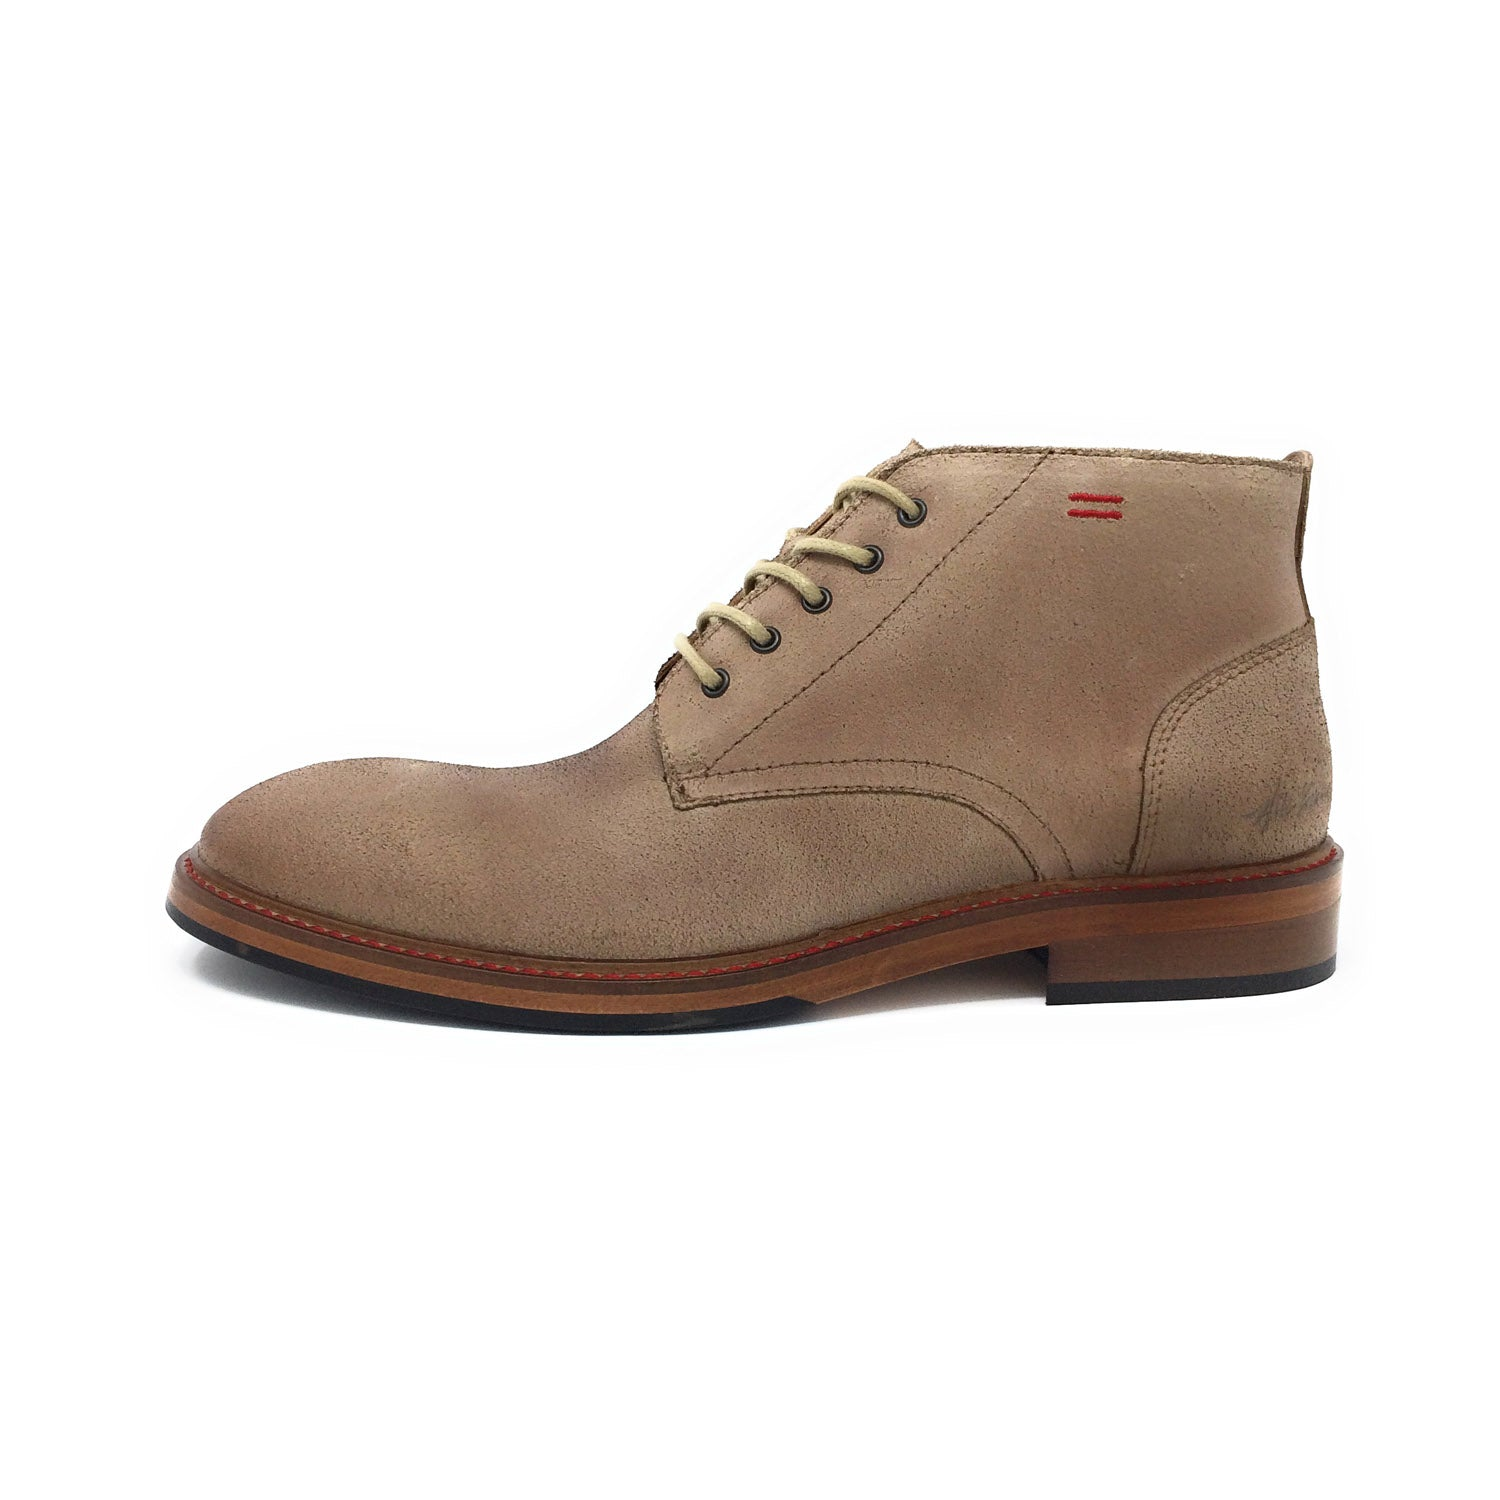 The Limited-Edition Desert Boot (3 color options) - NiK Kacy